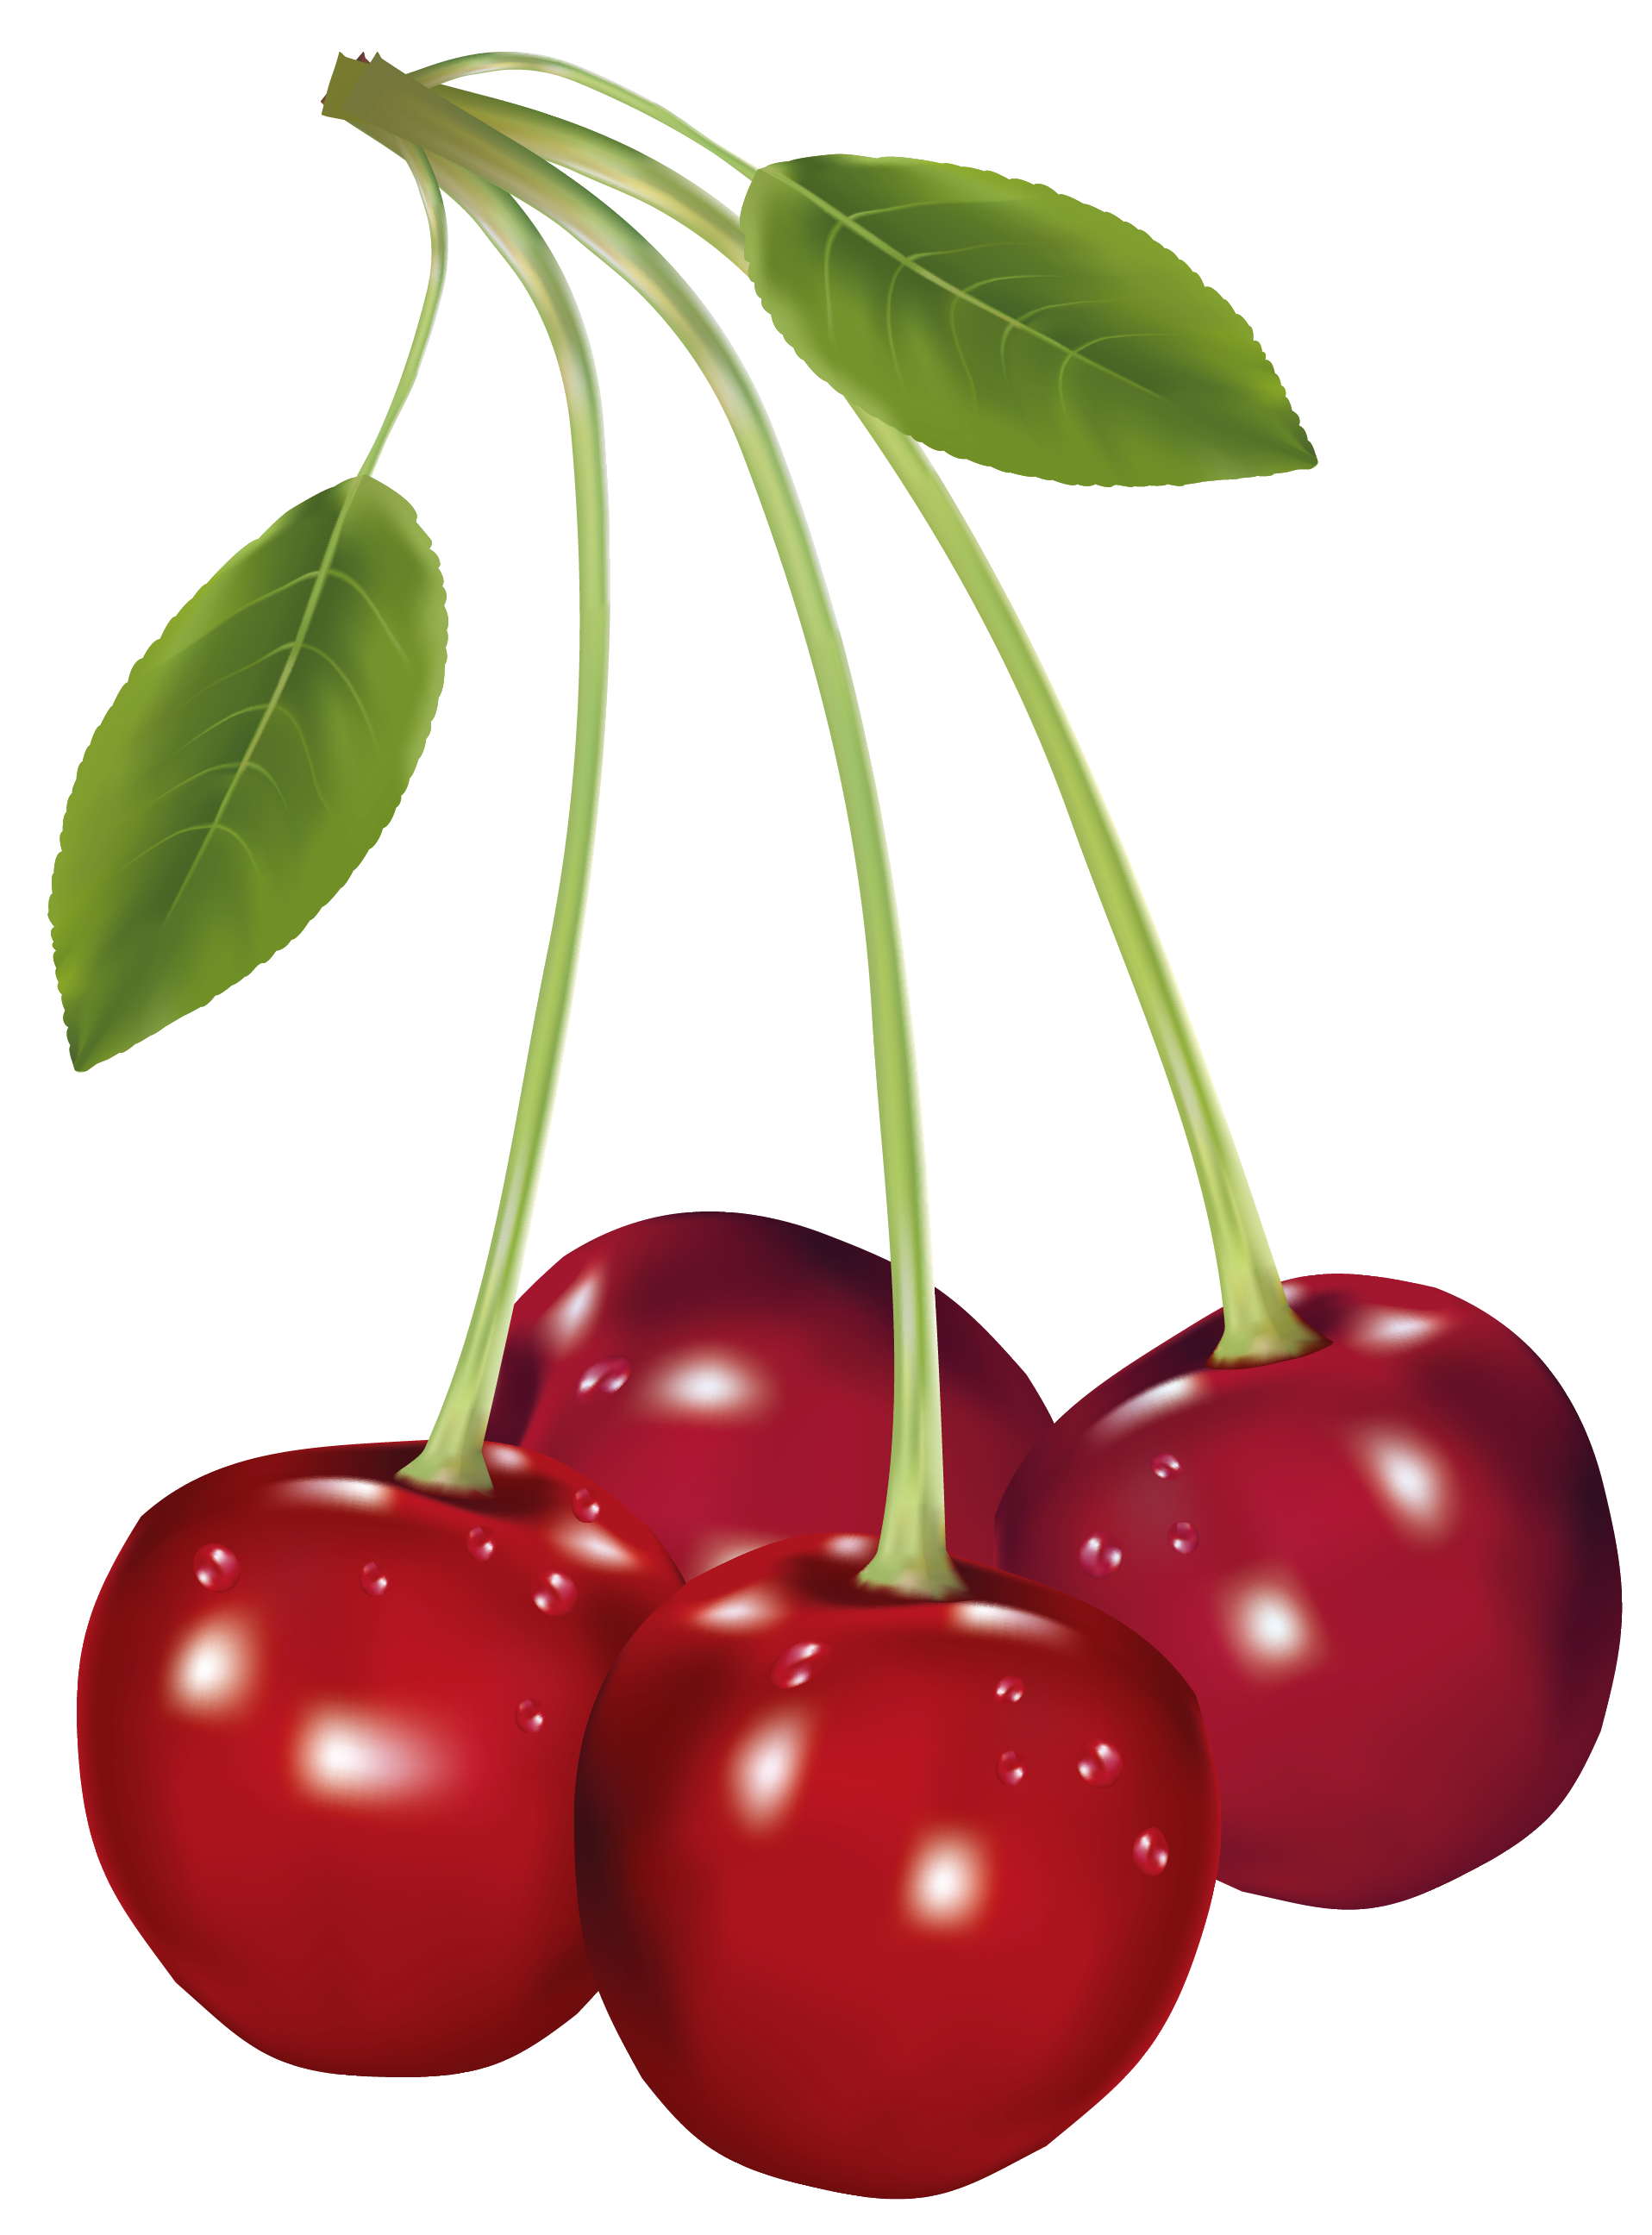 clip art stock Cherry clipart furits. Cherries png picture gallery.